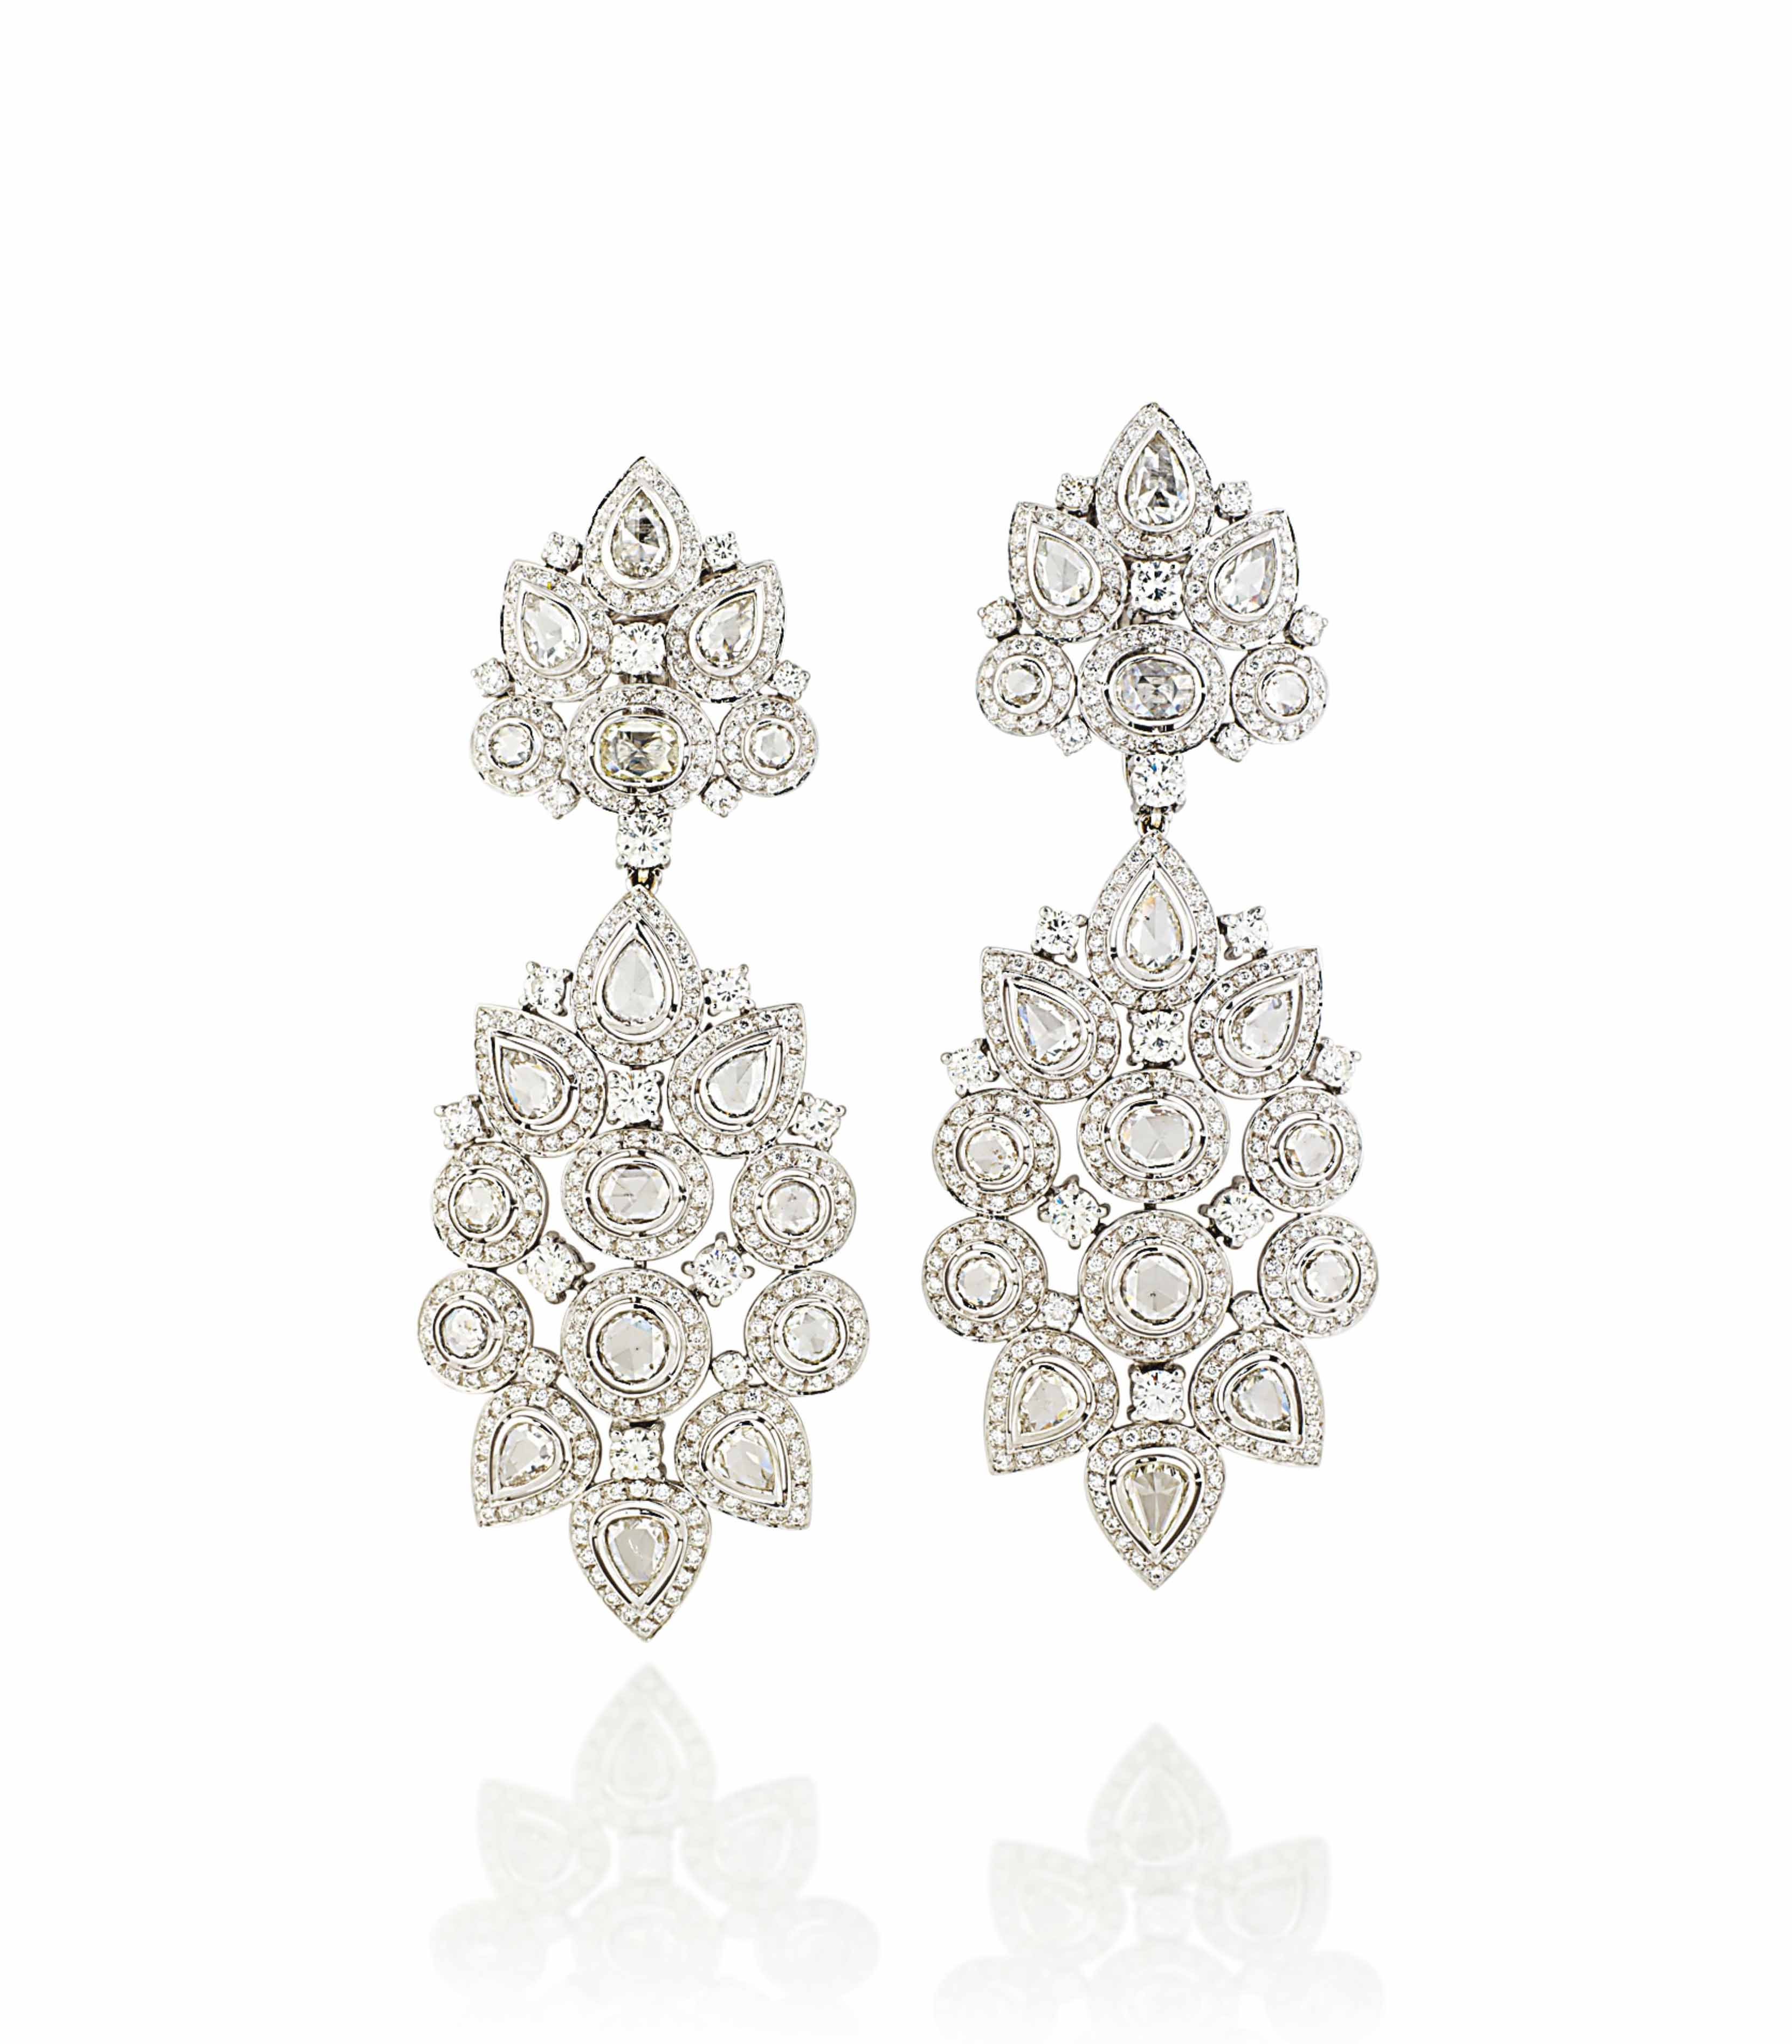 A PAIR OF DIAMOND EAR PENDANTS, BY REPOSSI